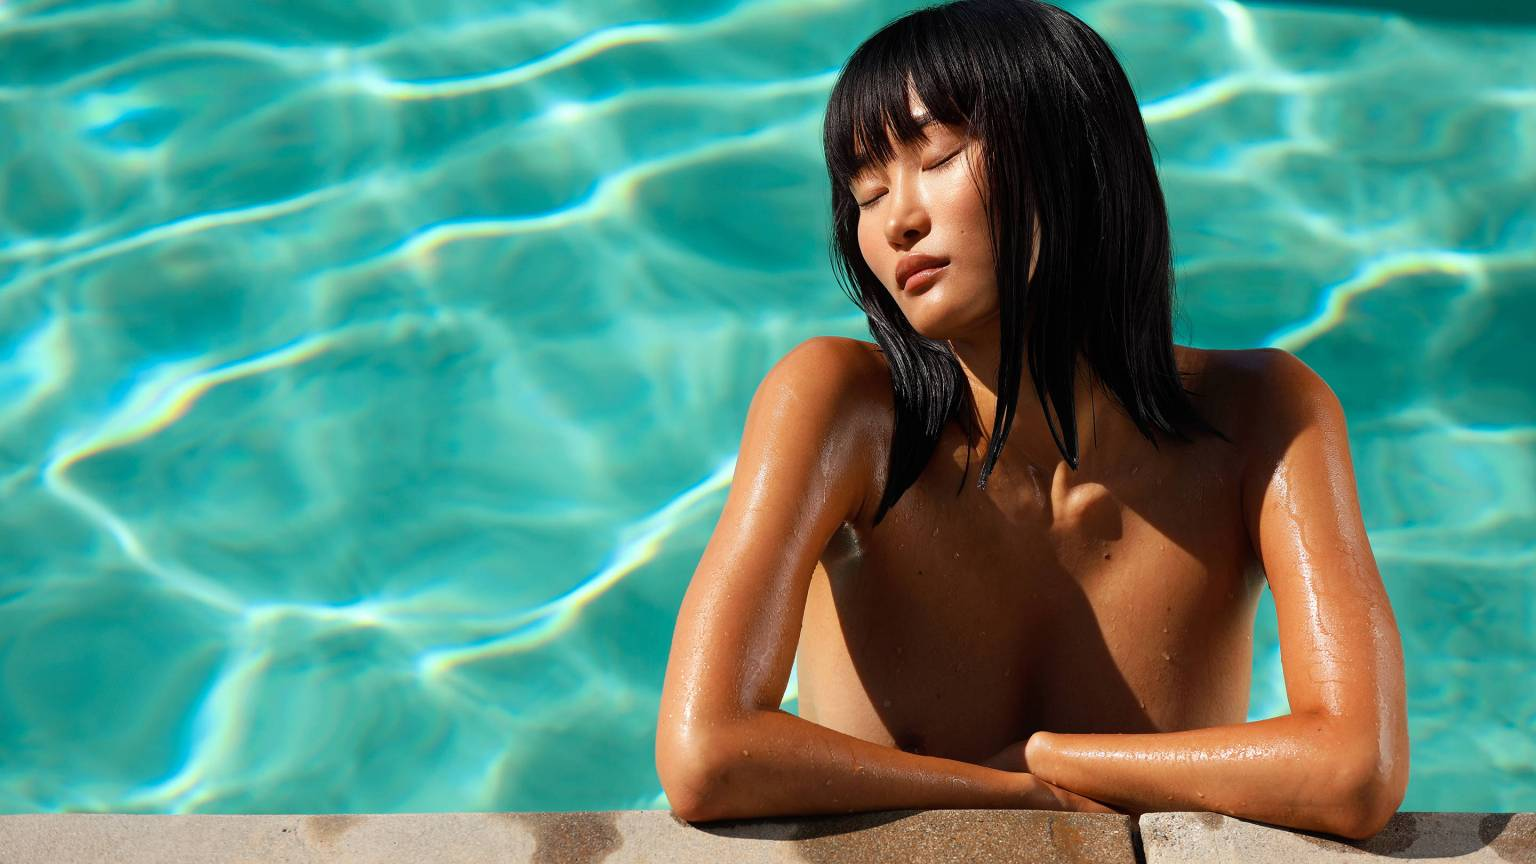 Embracing Natural Beauty With Miki Hamano